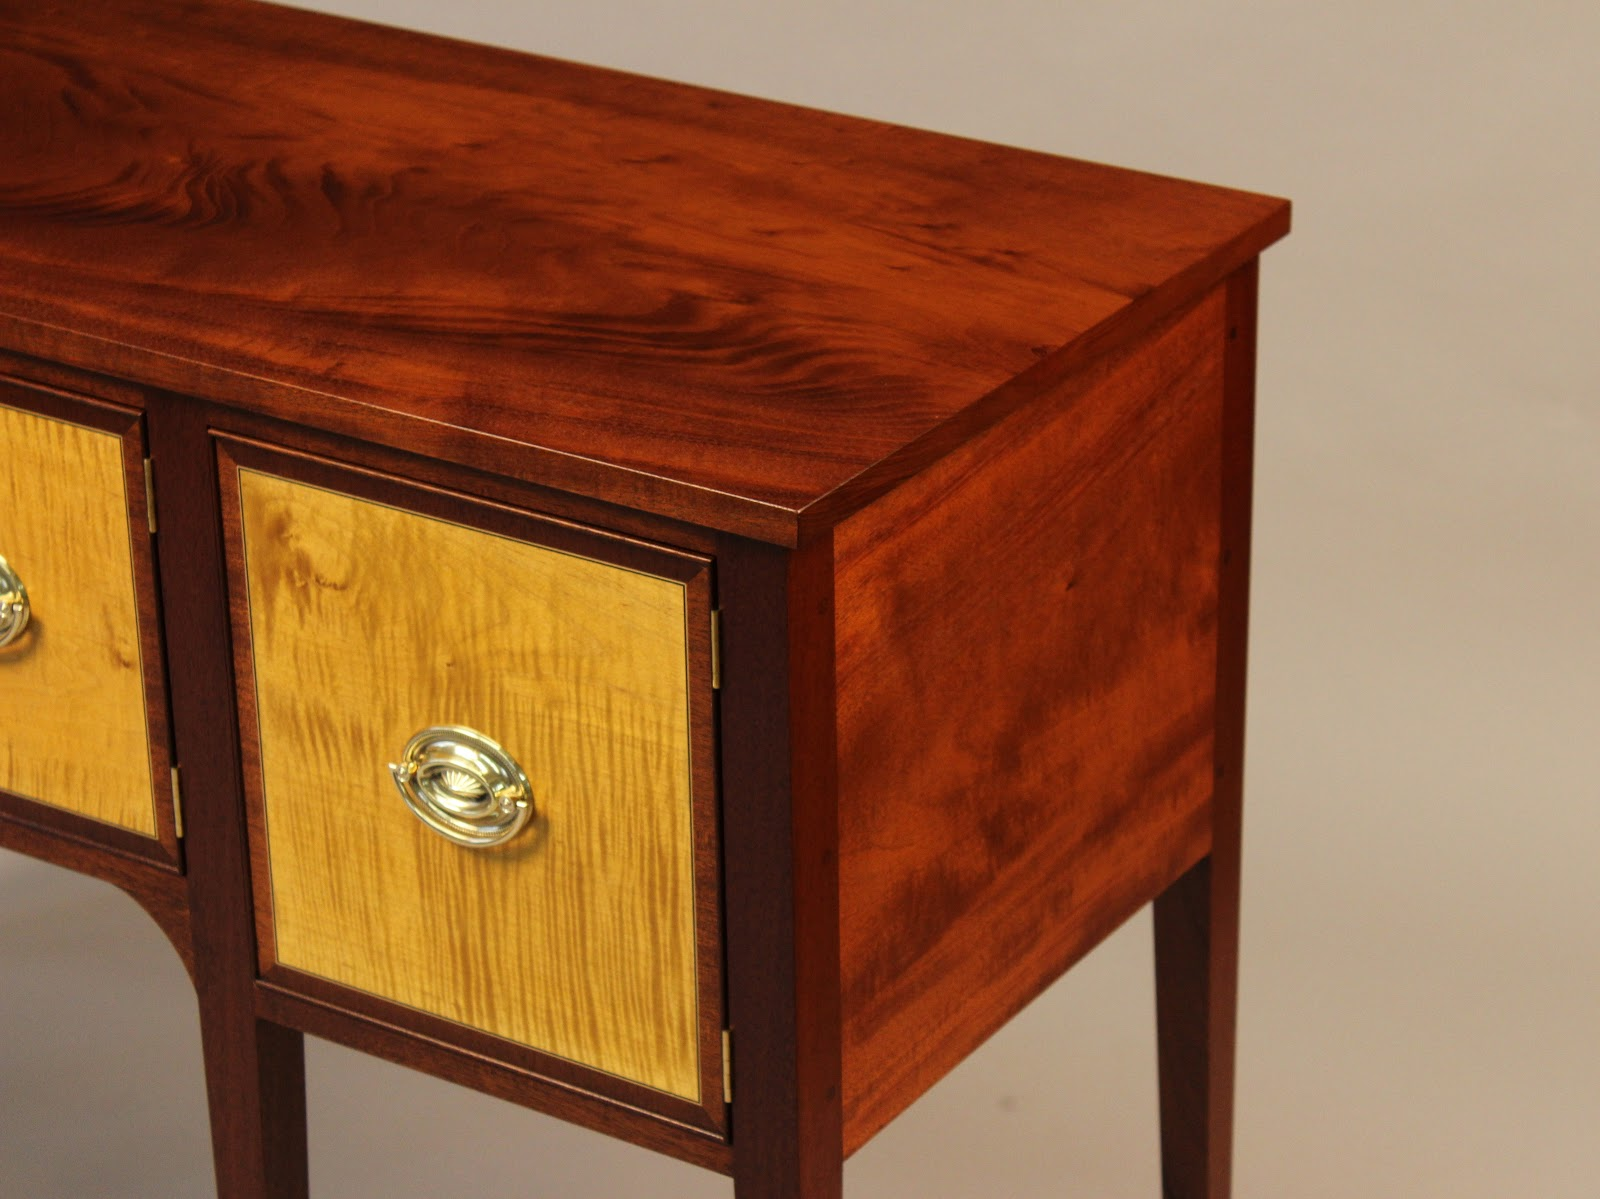 Doucette and Wolfe Fine Furniture Makers: Hepplewhite Sideboard